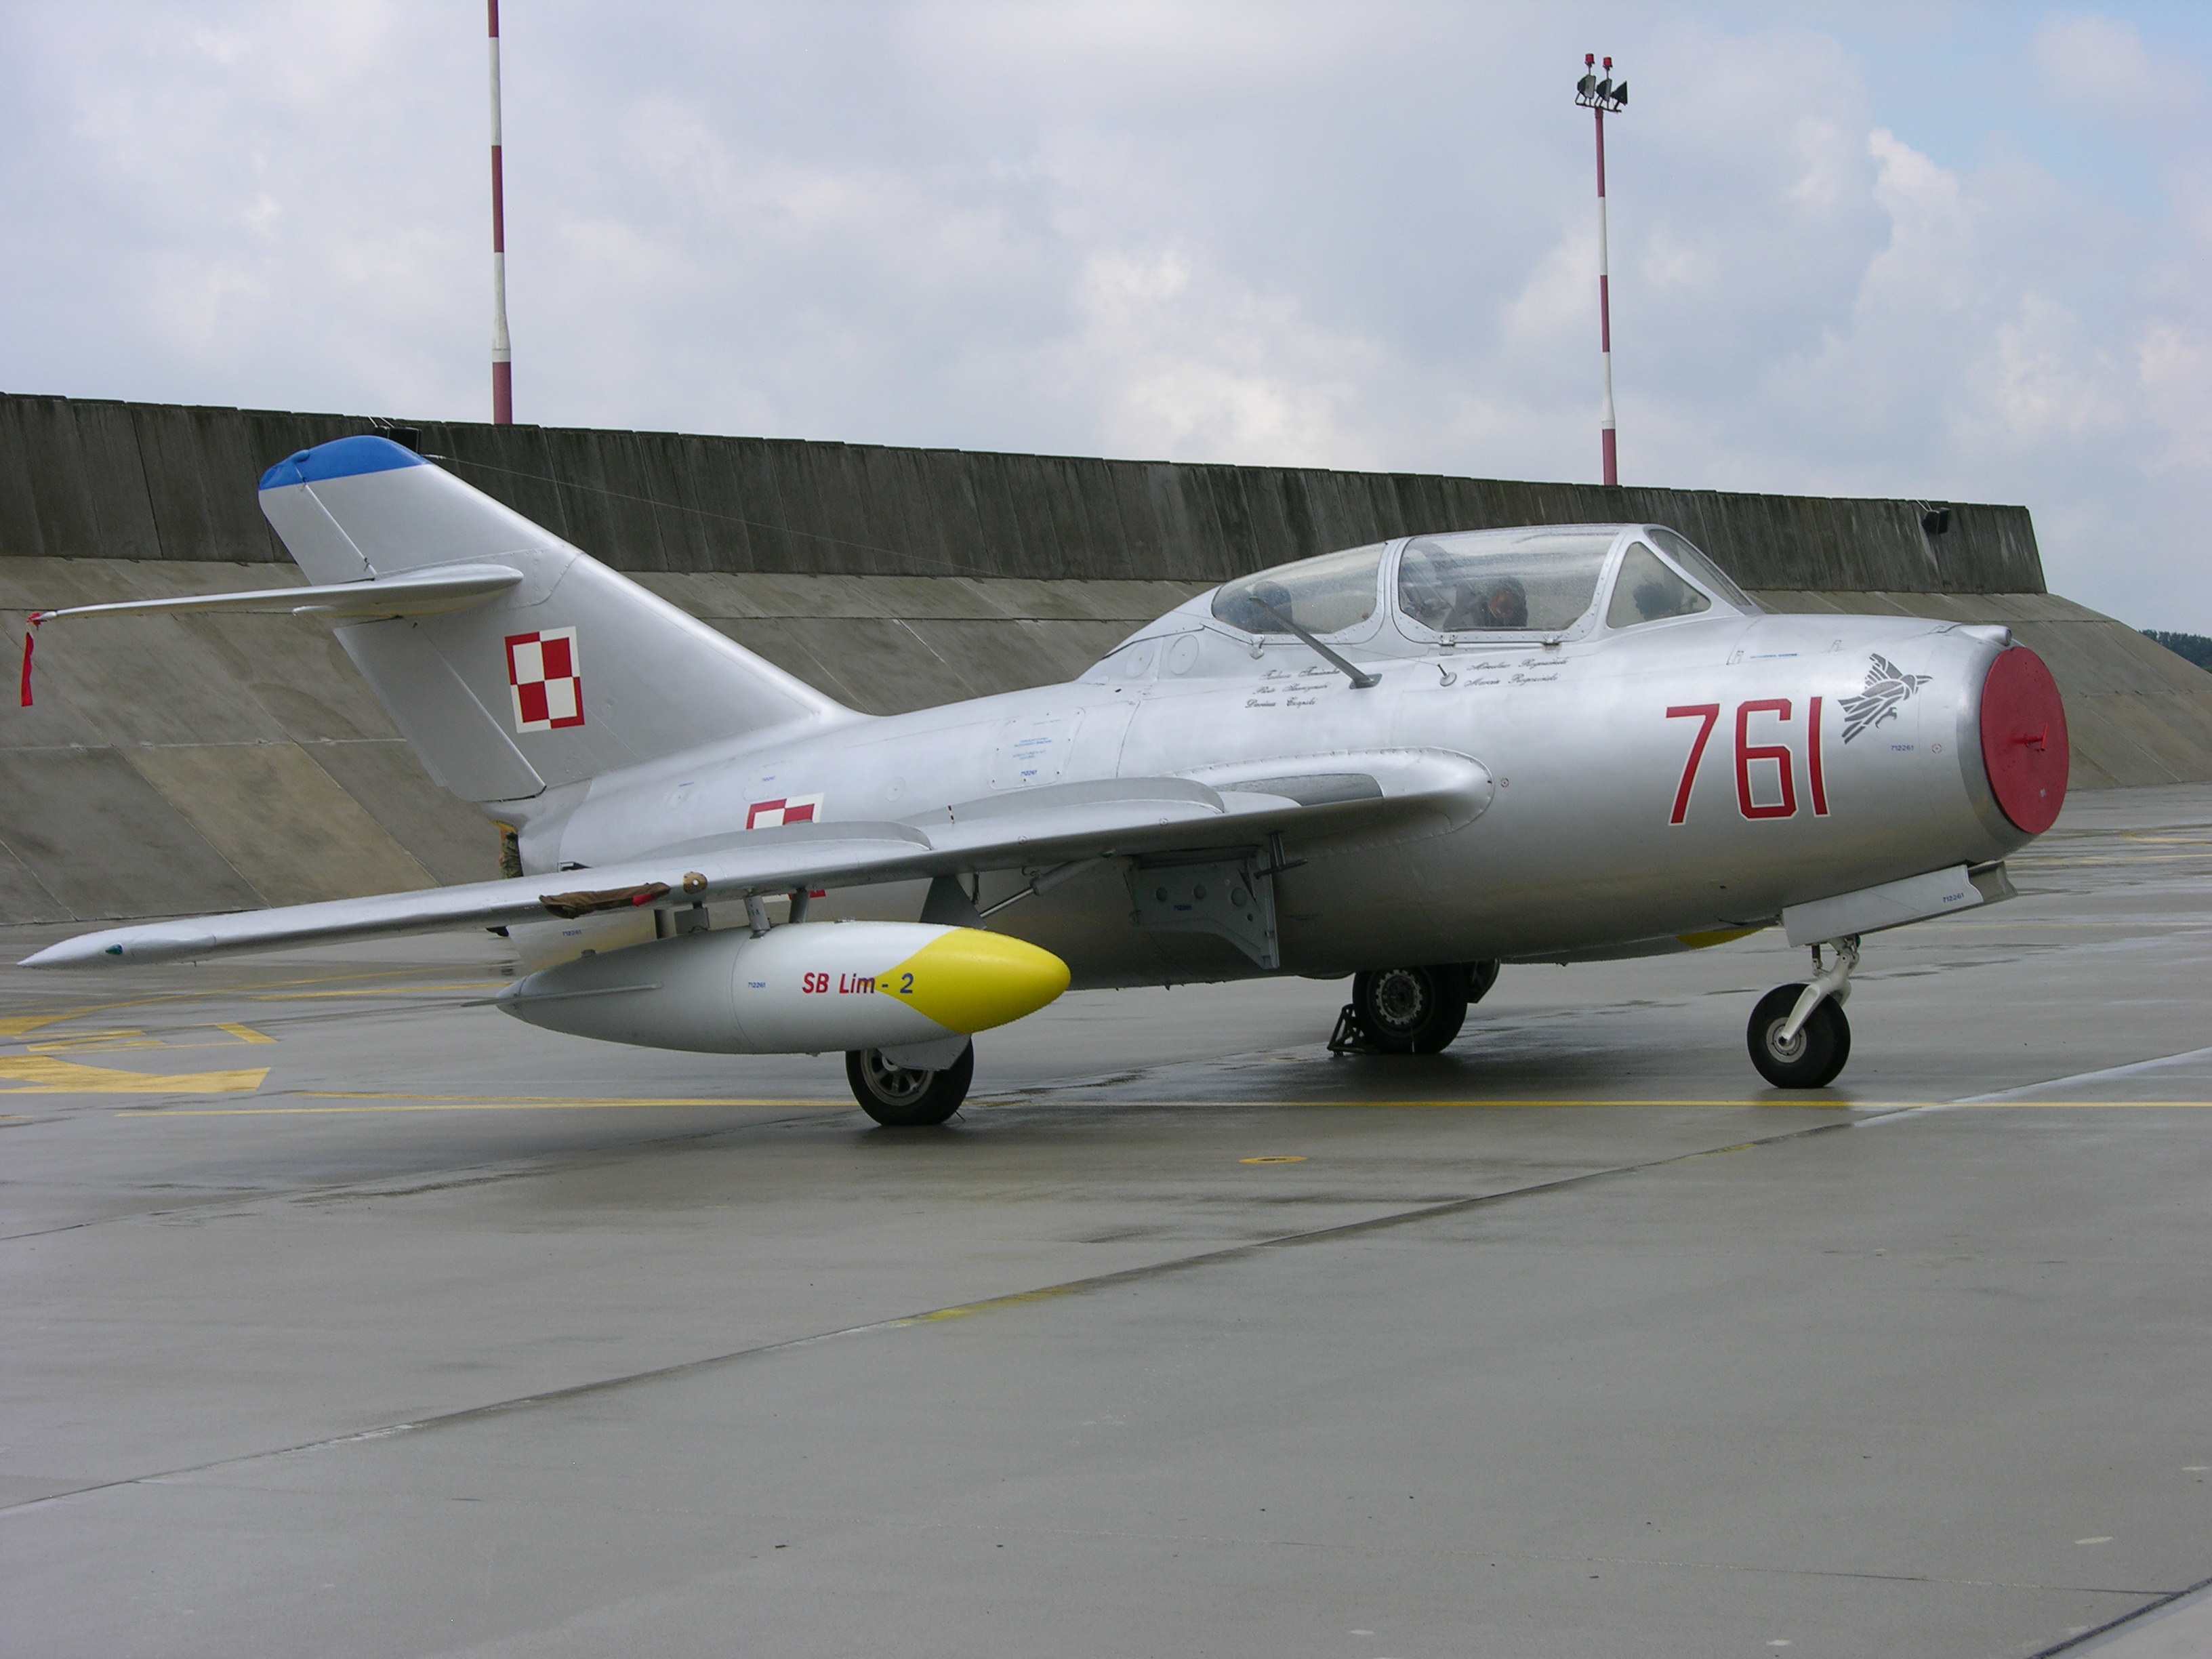 File:761 a MiG-15UTI preserved at Poznan-Krzesiny (3118035907).